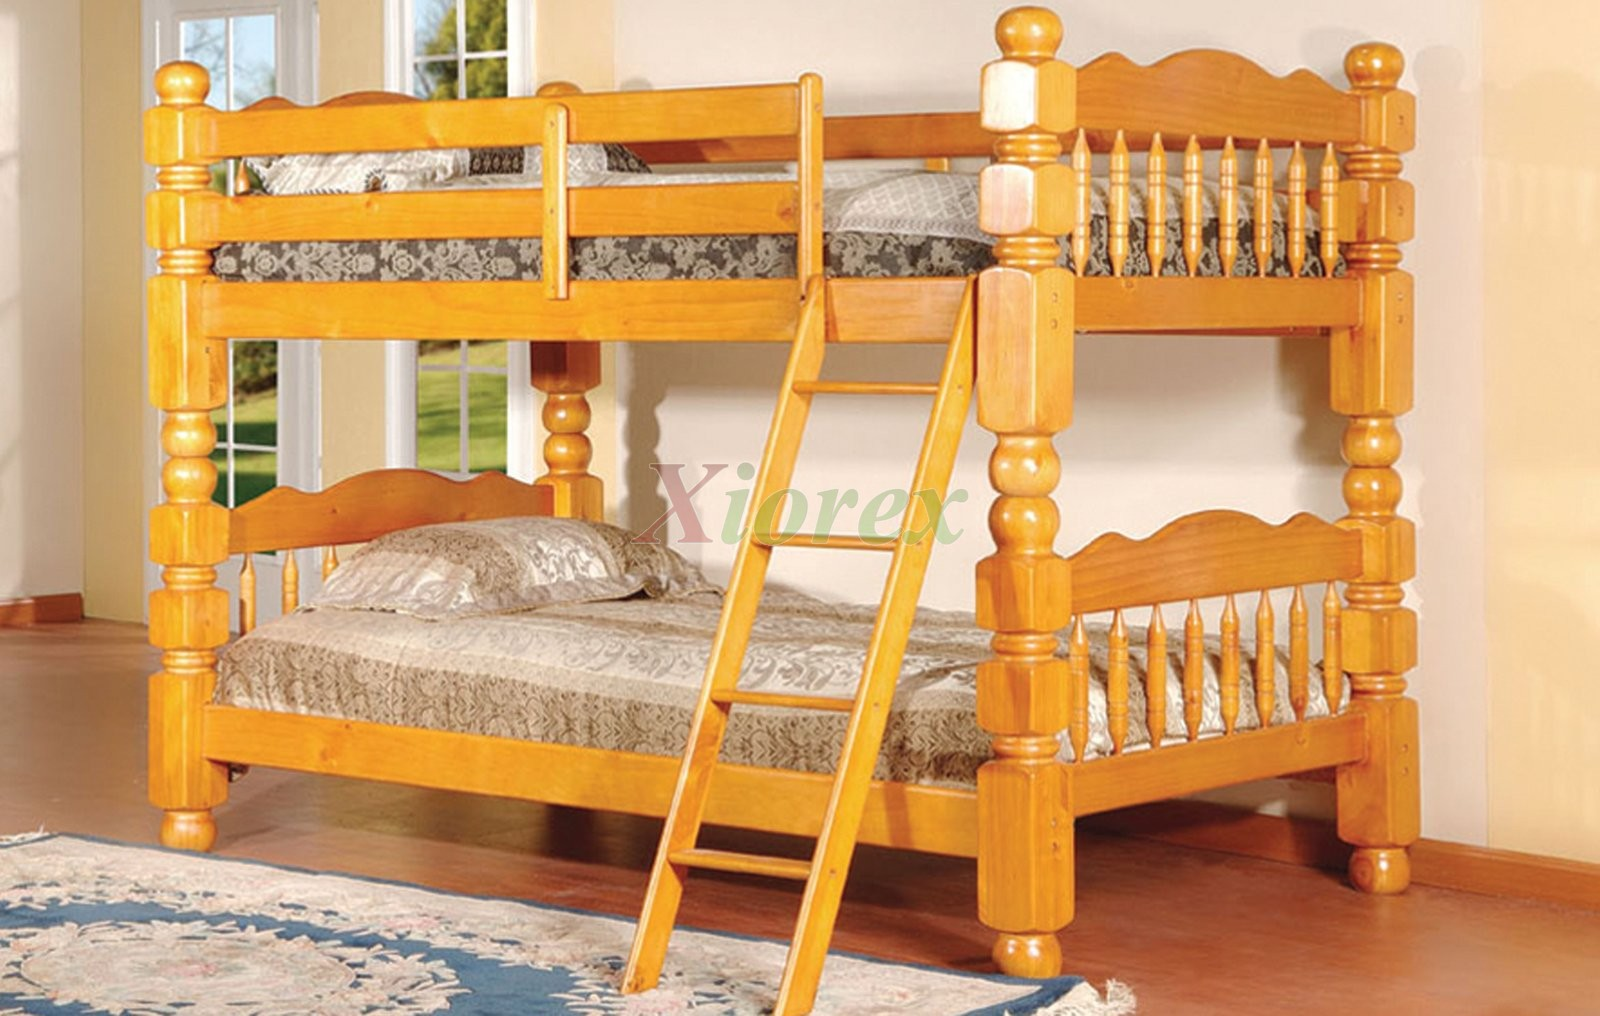 Full size bed and twin bed in loft - Acubens Heavy Duty Bunk Beds For Kids With Short Posts